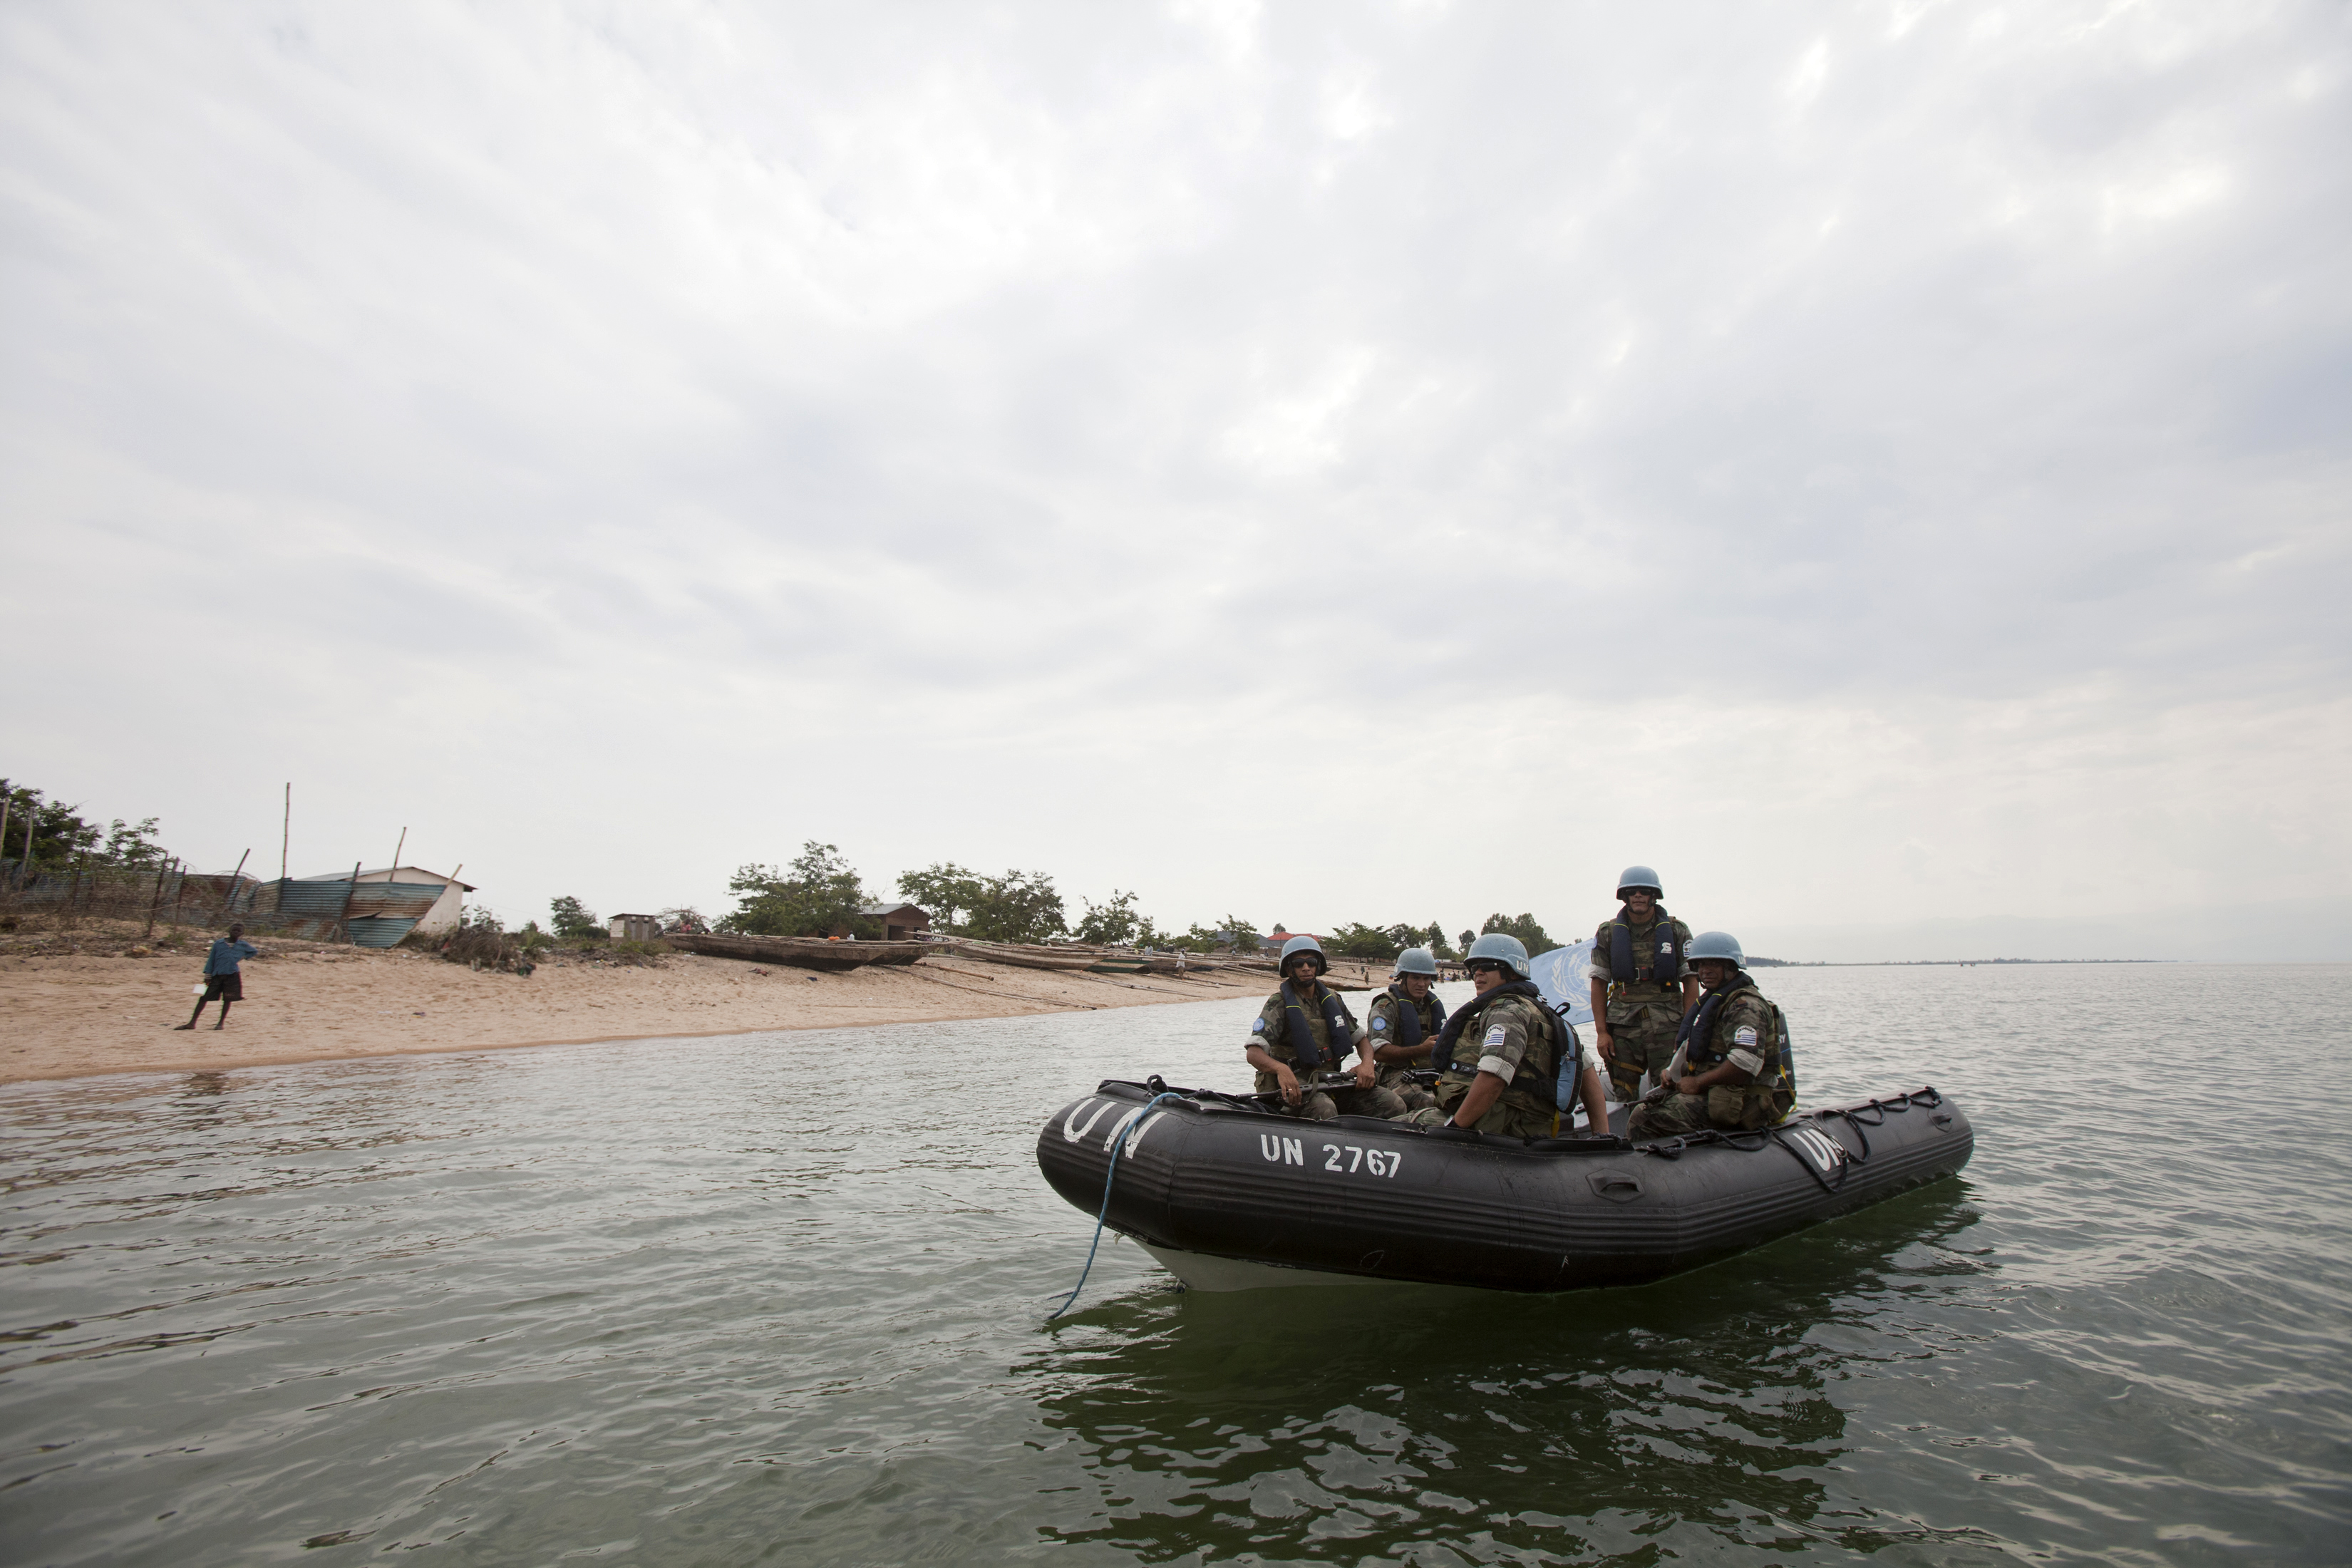 A contingent of Uruguayan peacekeepers with the UN Organization Stabilization Mission in the Democratic Republic of the Congo (MONUSCO) lands on a beach near Uvira, South Kivu province. The troops conduct an operation Tanganyika Lake to protect commercial navigation against piracy and armed groups, who carry out attacks and extort illegal taxes.